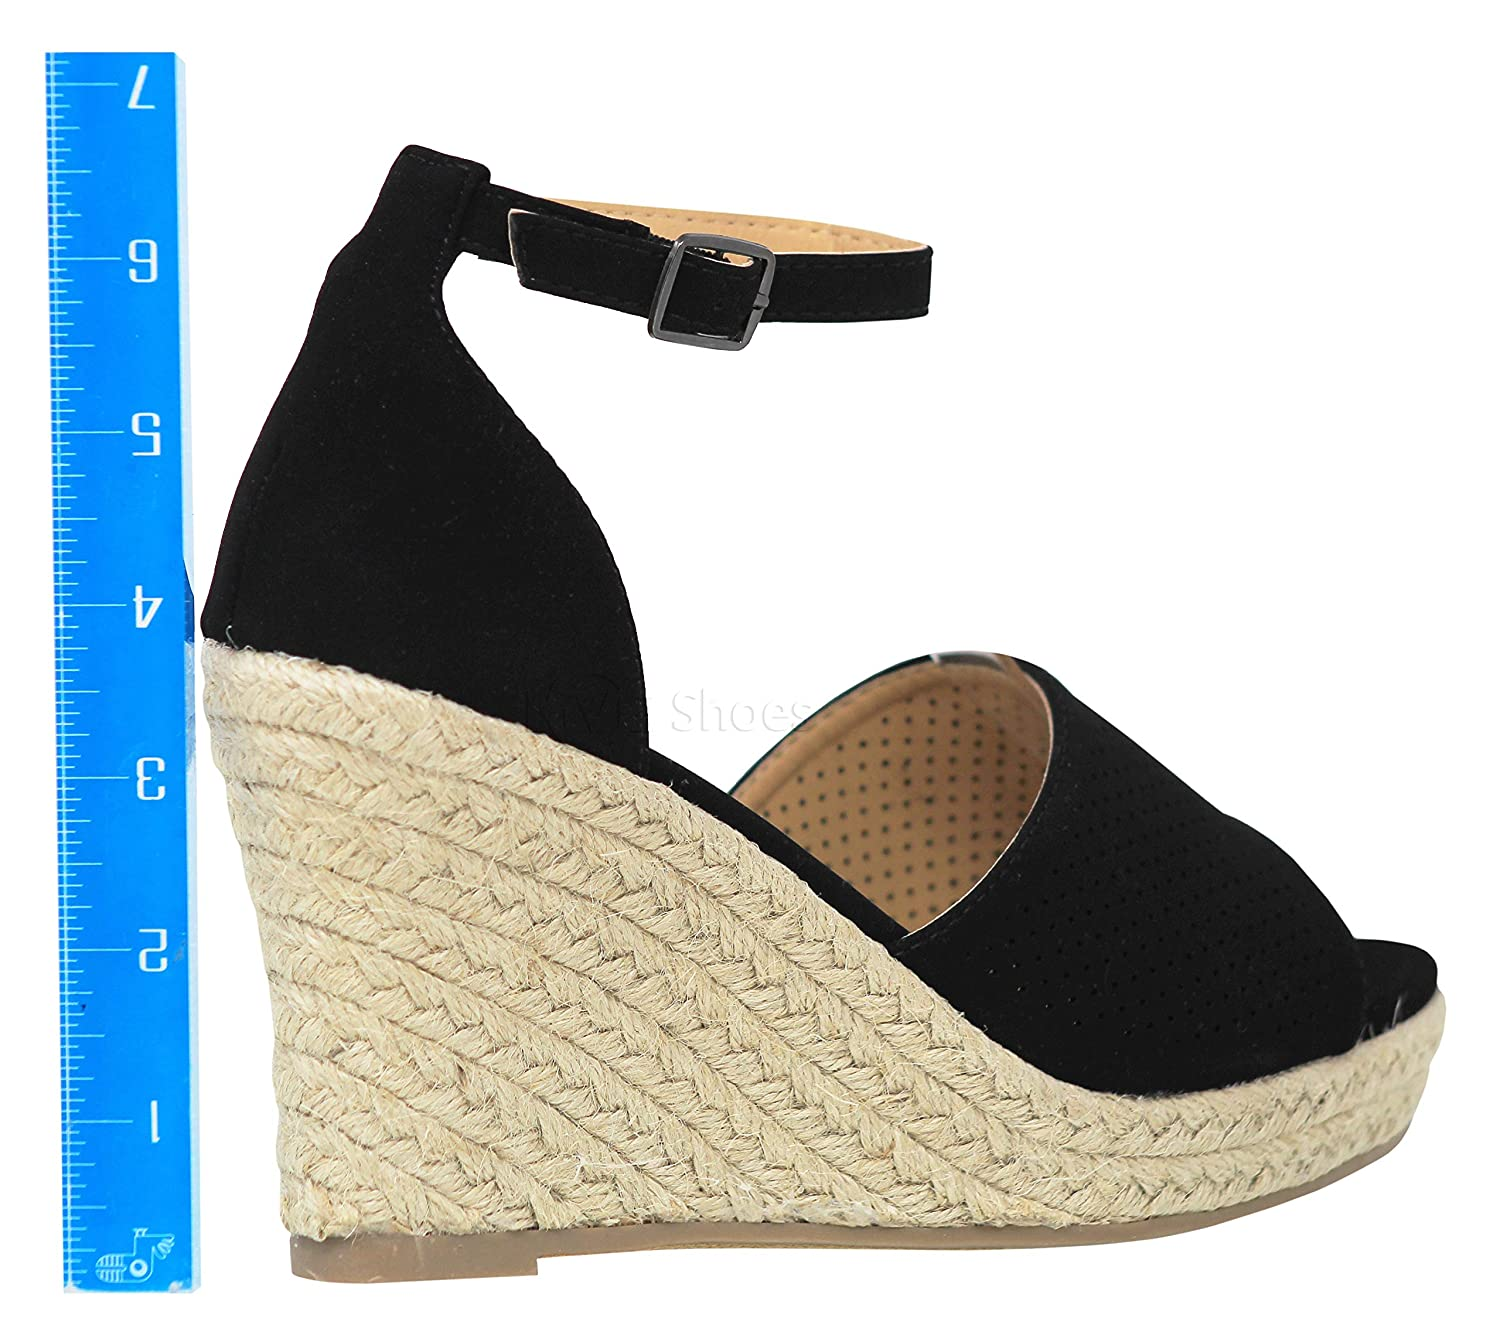 059a218a1b4 Amazon.com  MVE Shoes Womens Comfortable Open Toe Adjustable Ankle Strap  Wedge  Shoes